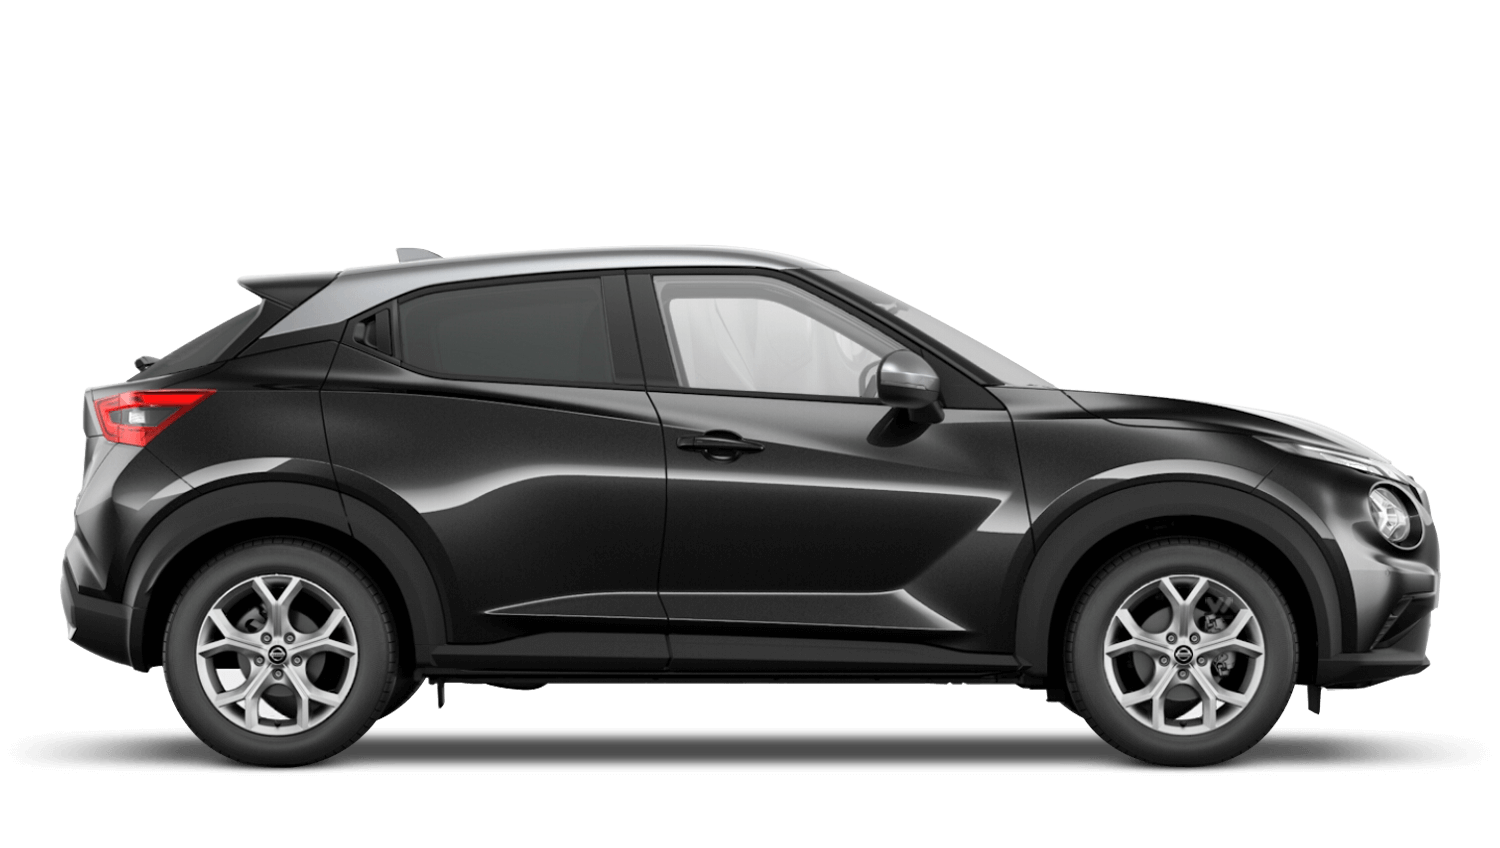 Pearl Black with Blade Silver Roof Next Generation Nissan Juke